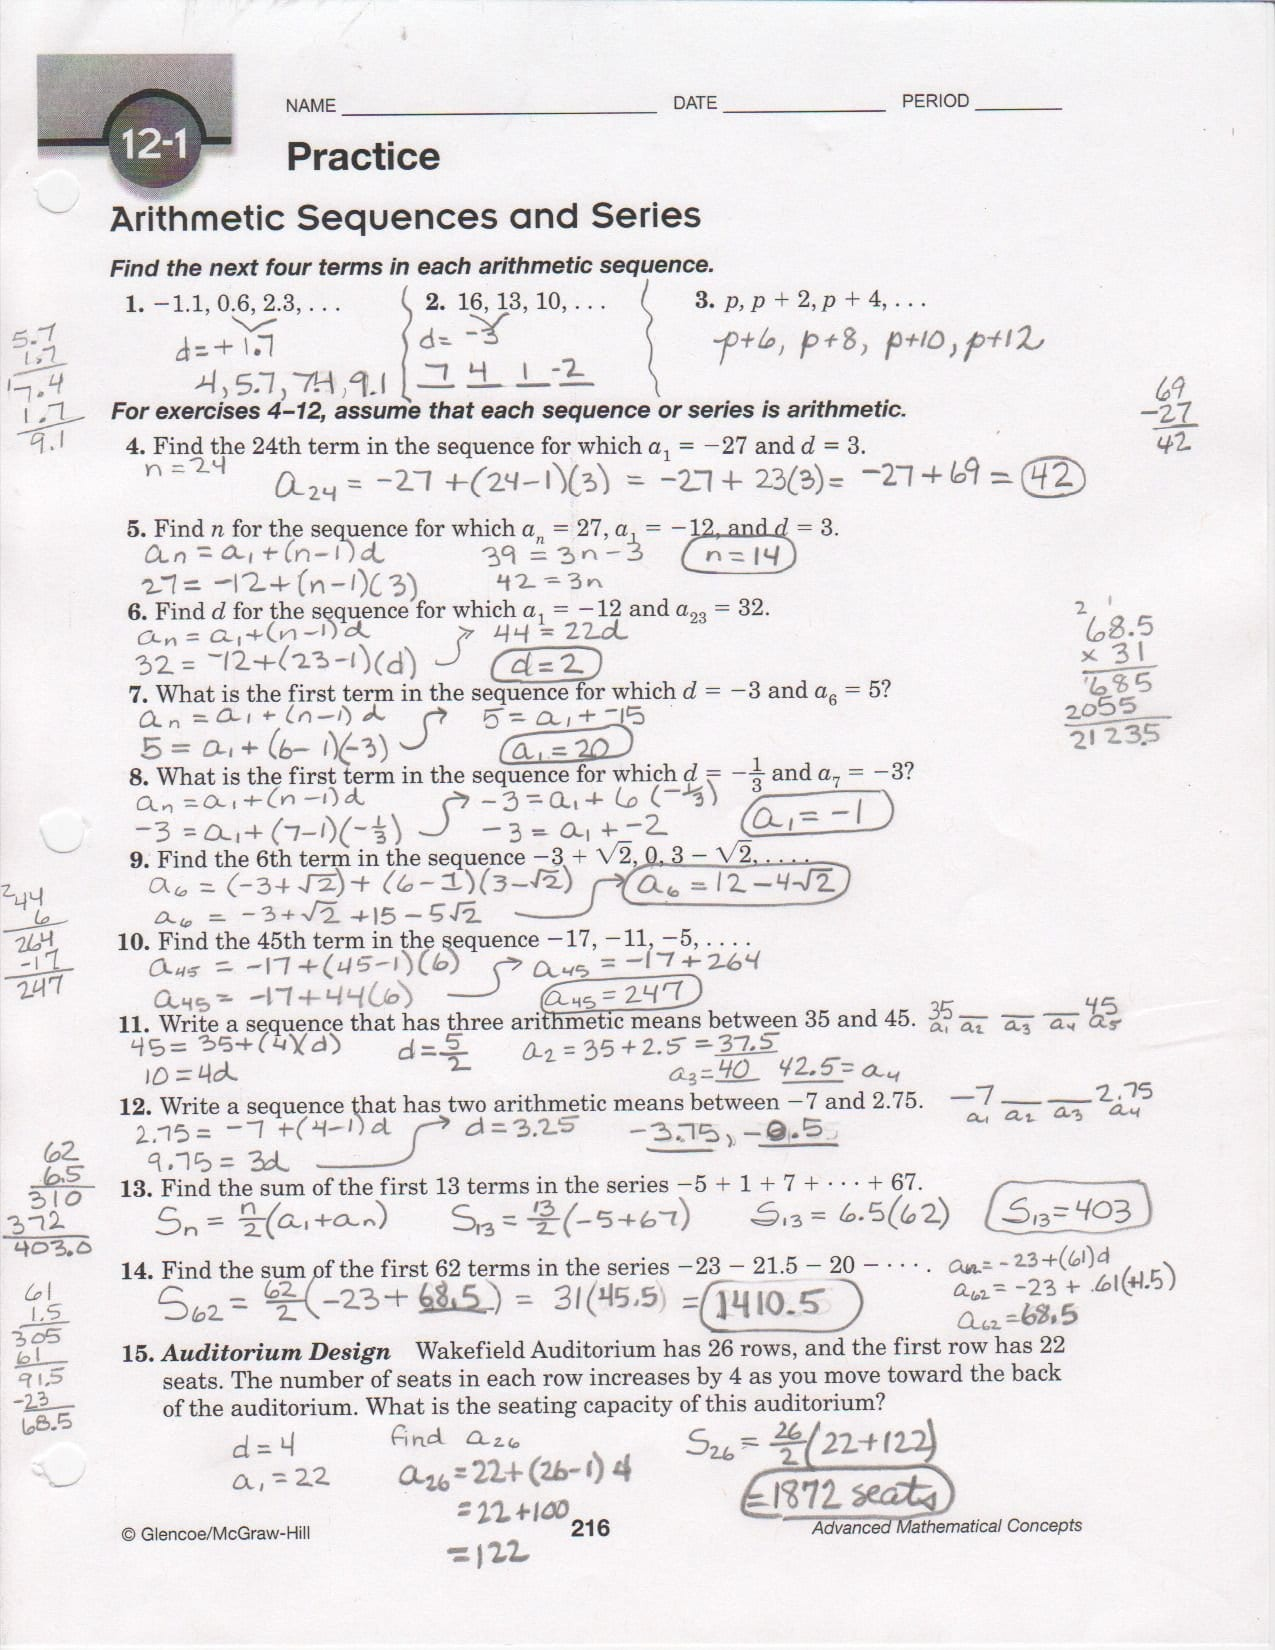 Arithmetic Sequences Worksheet 1 Answer Key  Briefencounters Along With Arithmetic Sequences Worksheet 1 Answer Key